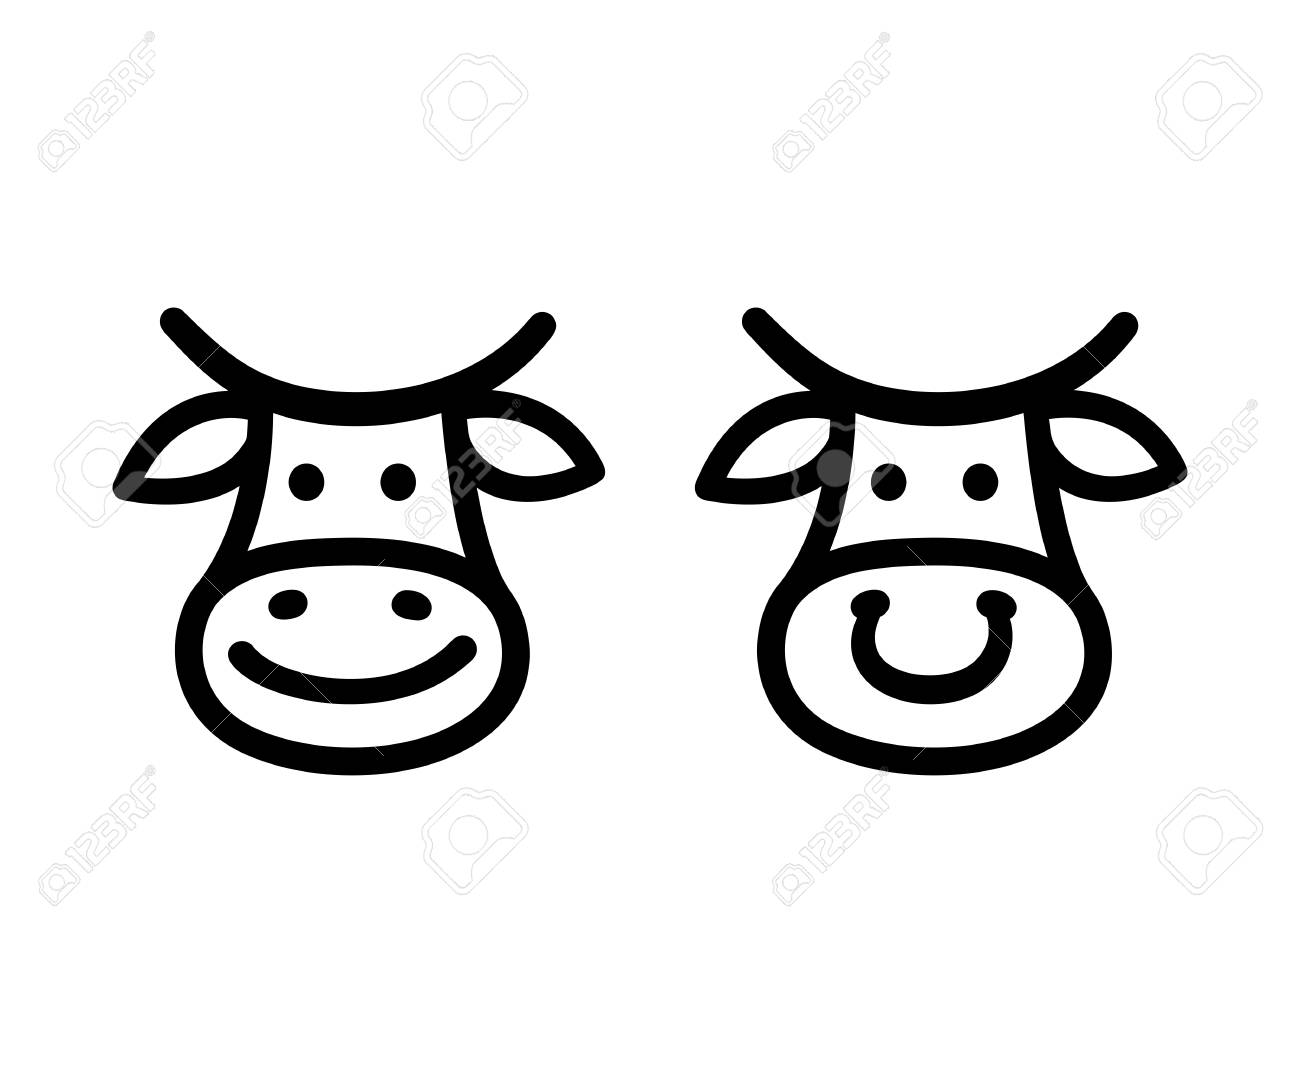 Cute Cartoon Cow Face Icon, Smiling And With Nose Ring. Hand ...